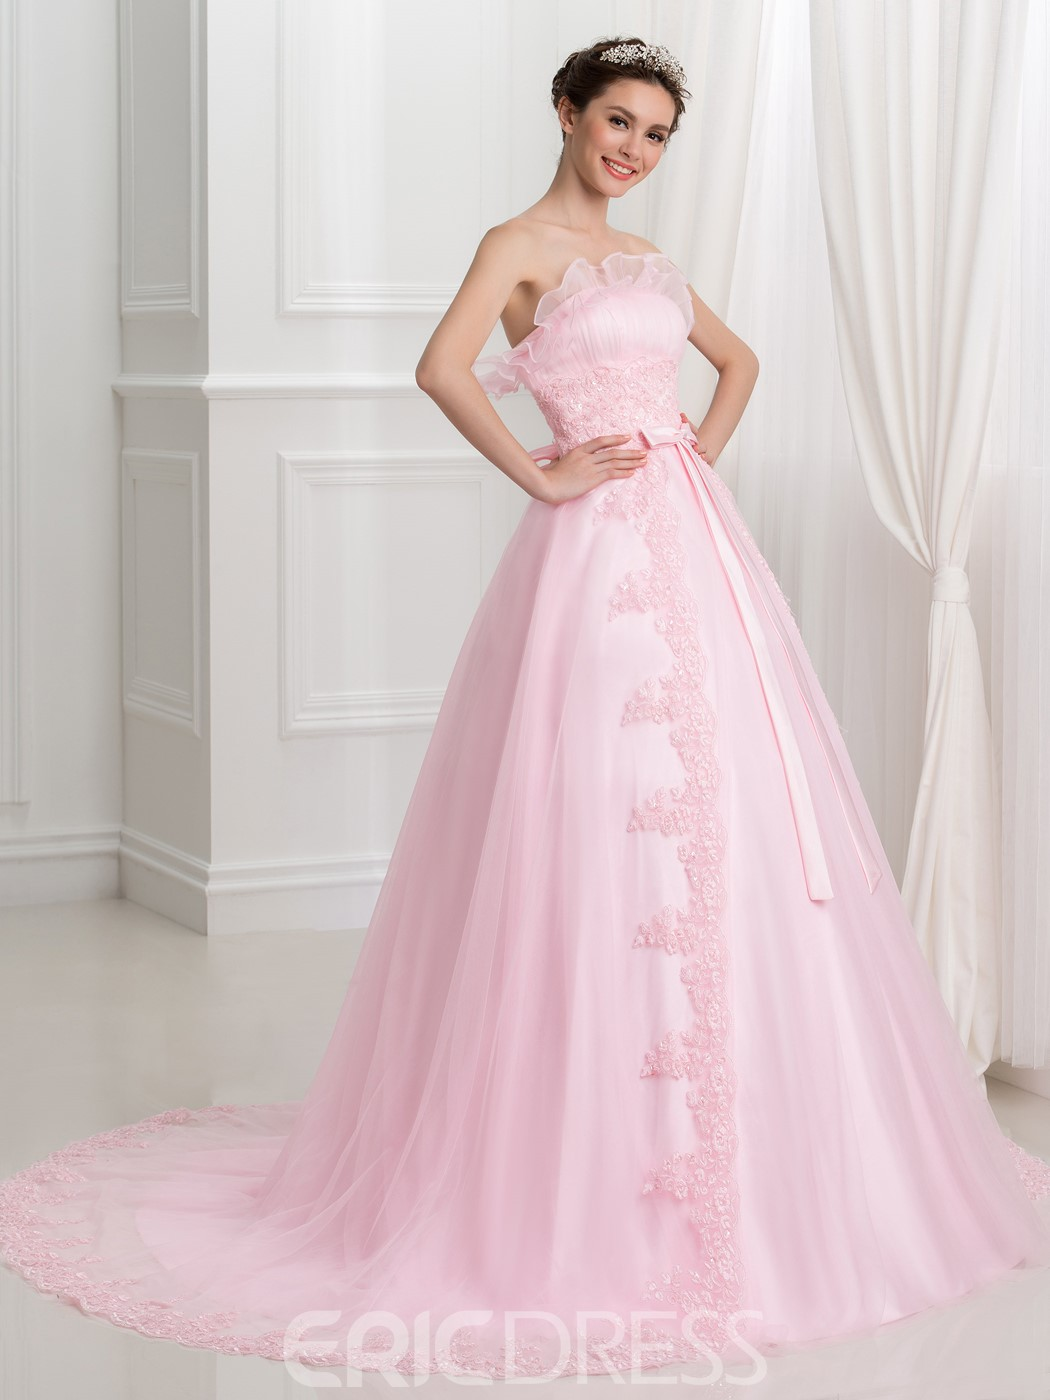 Ericdress Strapless Bowknot Appliques Sequins Ball Gown Quinceanera Dress